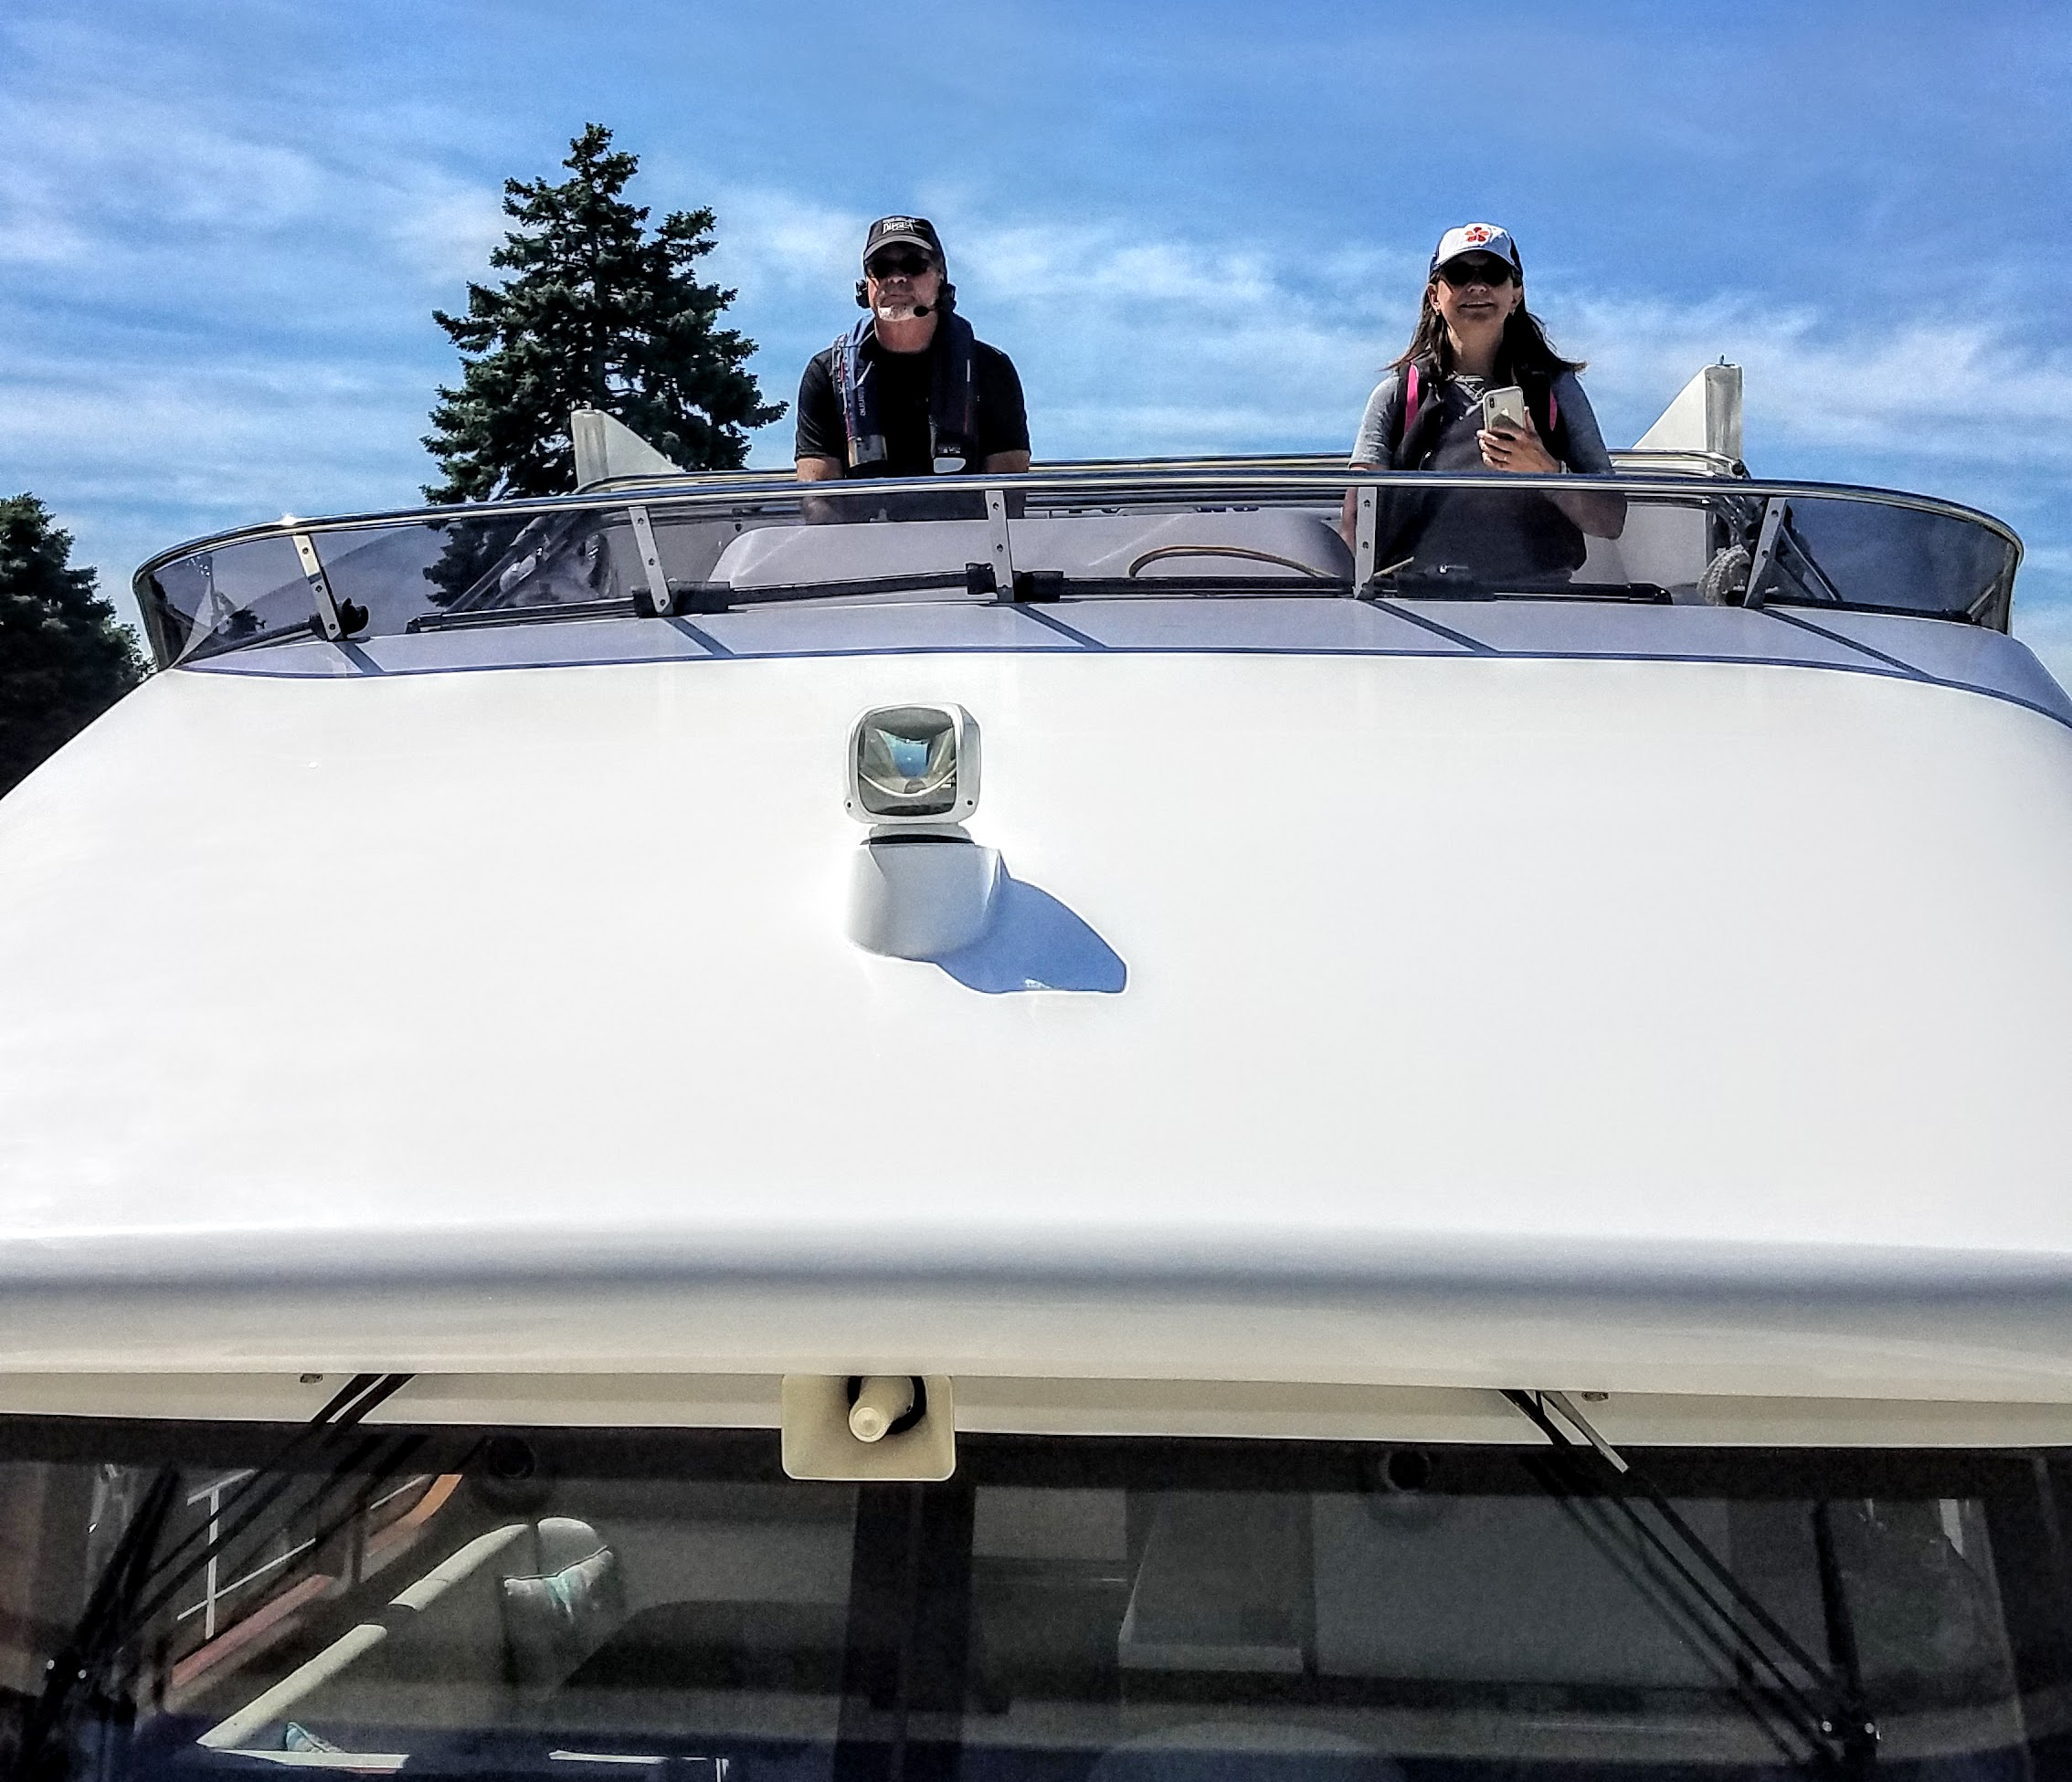 Captain Larry and Julia Lennon hold the helm station